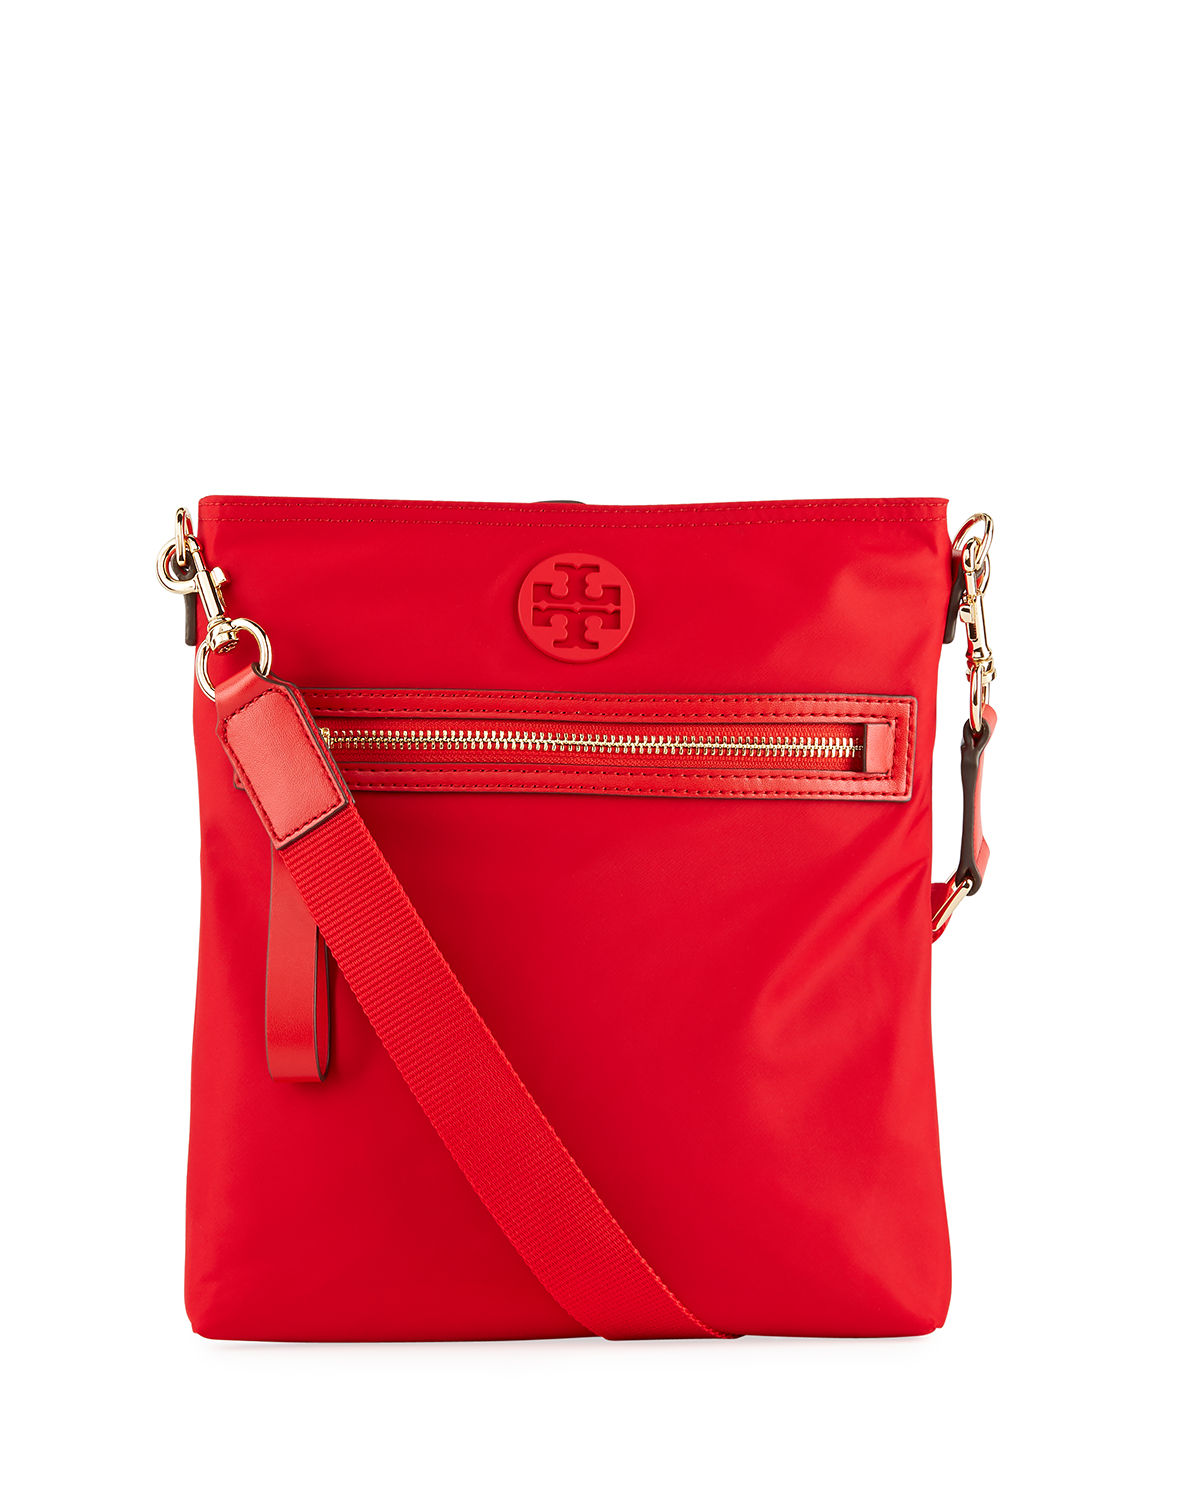 3d109147ddc Tory Burch Tilda Swingpack Crossbody Bag